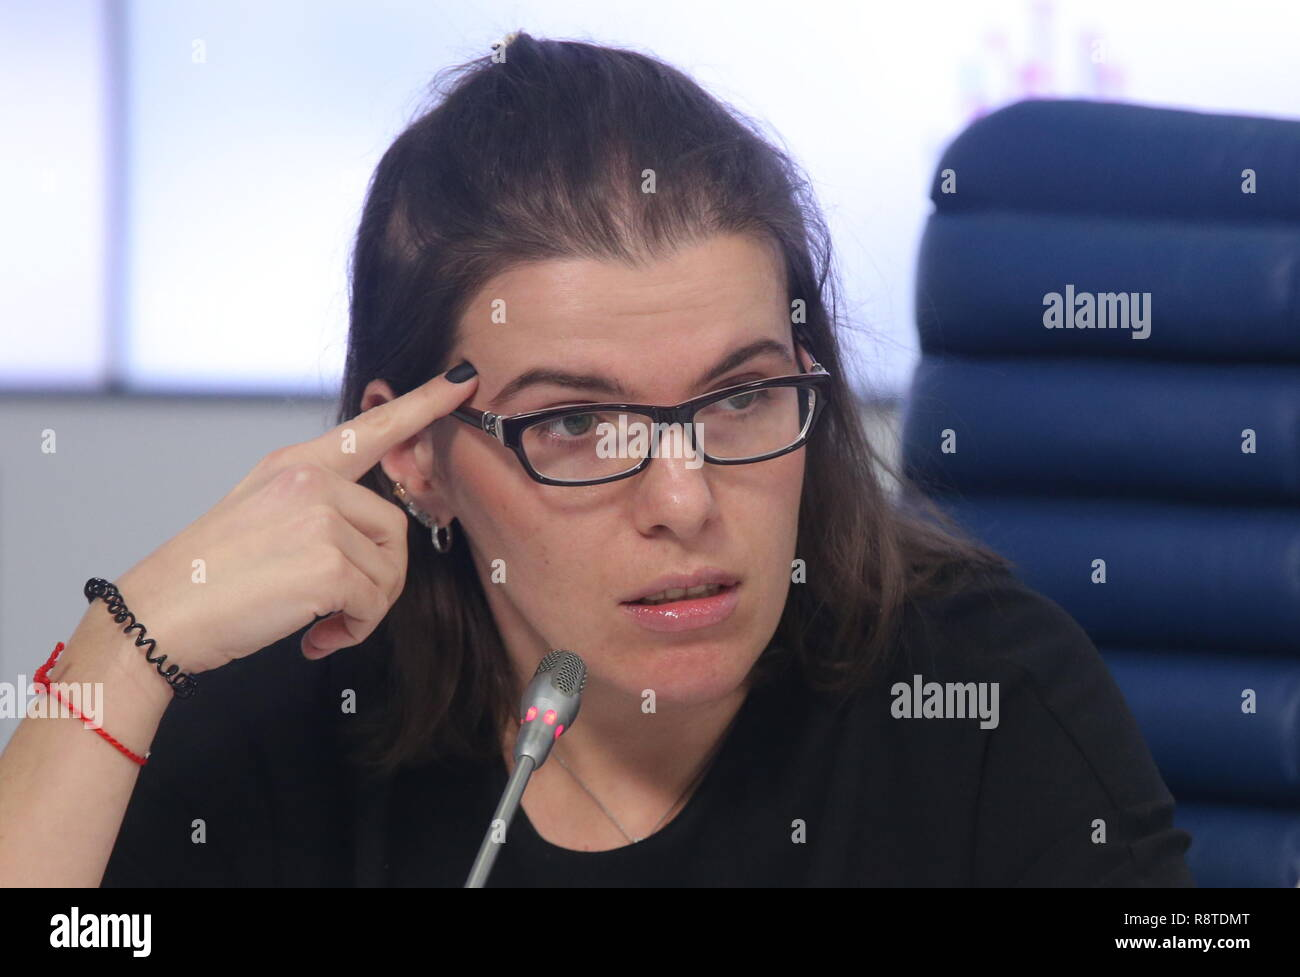 Moscow, Russia. 17th Dec, 2018. MOSCOW, RUSSIA - DECEMBER 17, 2018: The editor-in-chief of the urbanus.ru web portal, Anastasia Kremenchuk, at a press conference by Urban Awards organisers at the Moscow office of the TASS news agency to discuss the trends in Moscow's real estate development market in 2018. Vladimir Gerdo/TASS Credit: ITAR-TASS News Agency/Alamy Live News - Stock Image